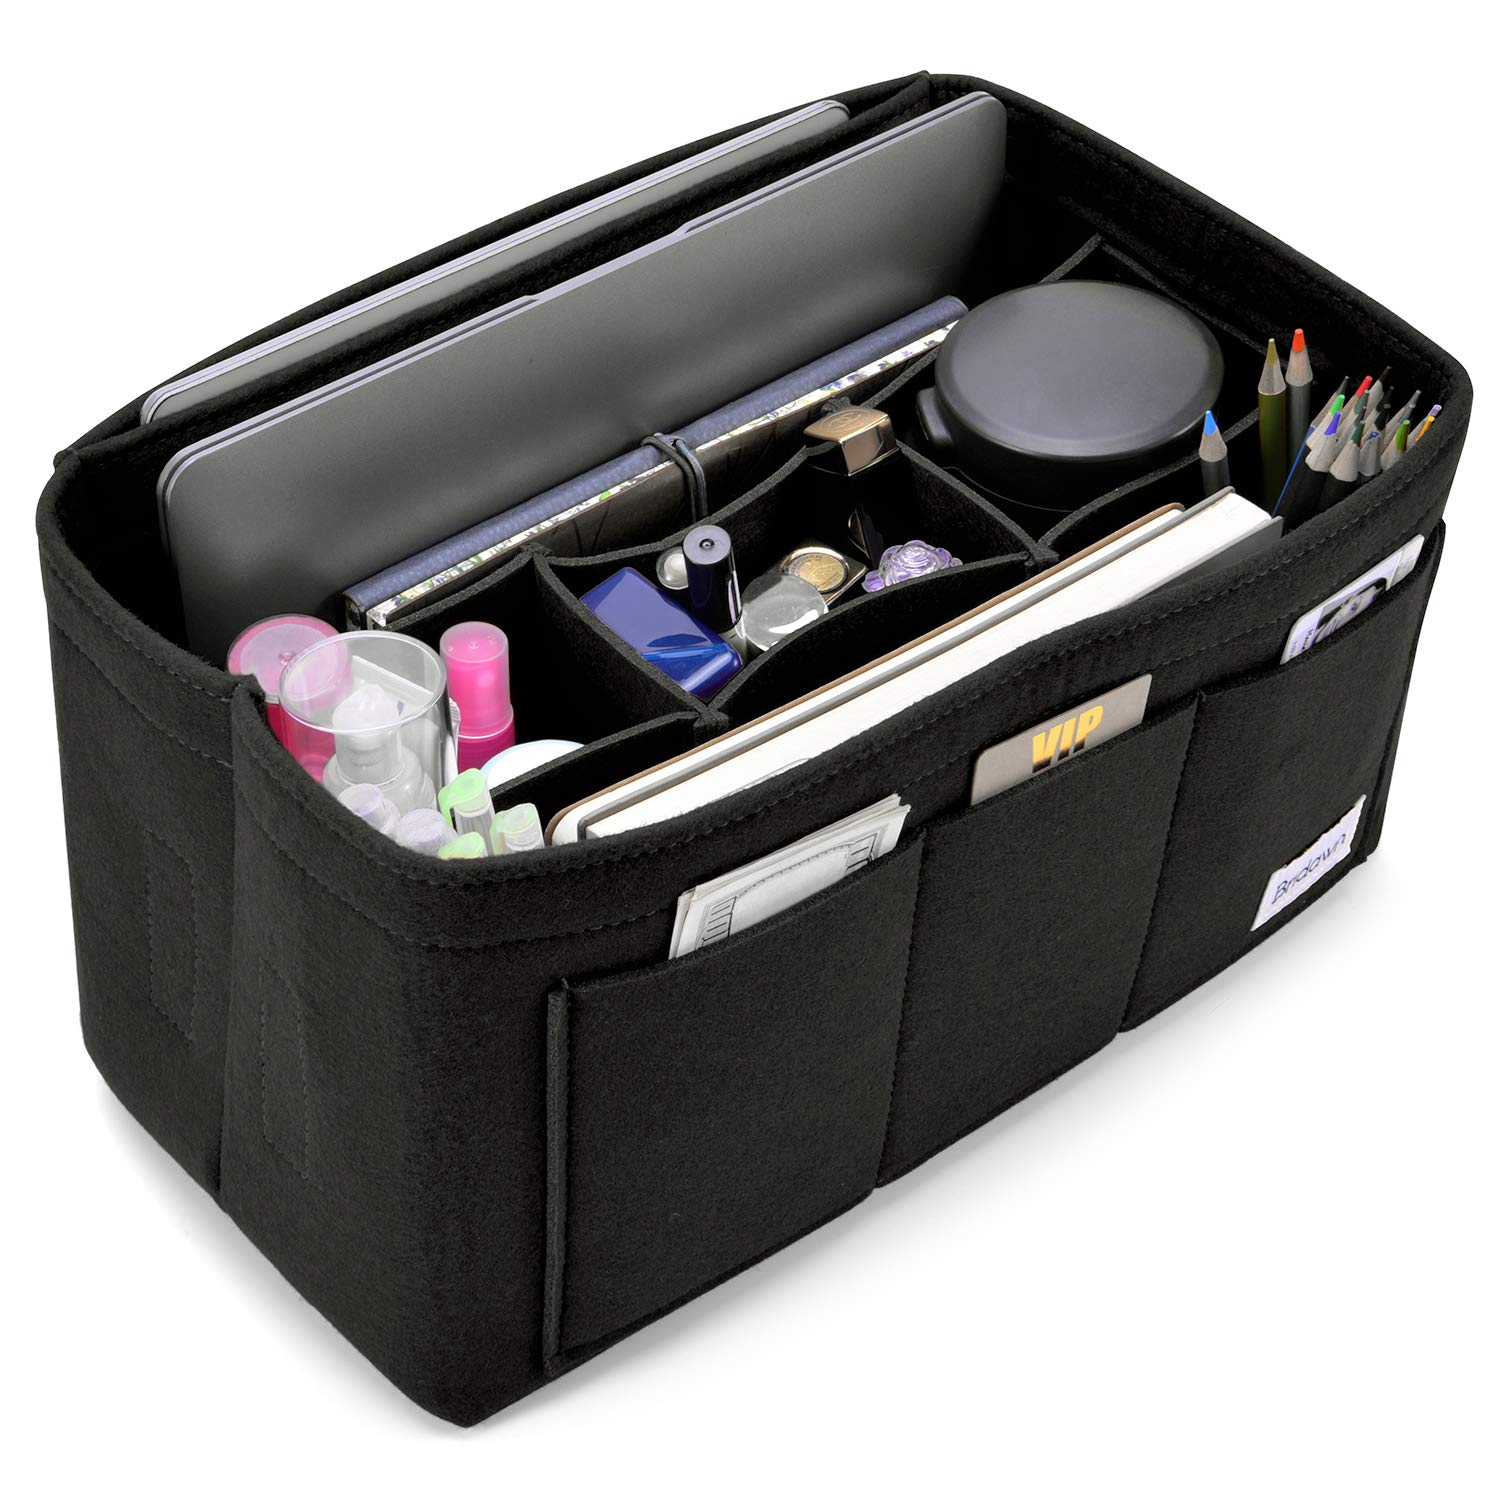 Amazon.com: Bridawn Neverfull - Bolso organizador de fieltro ...